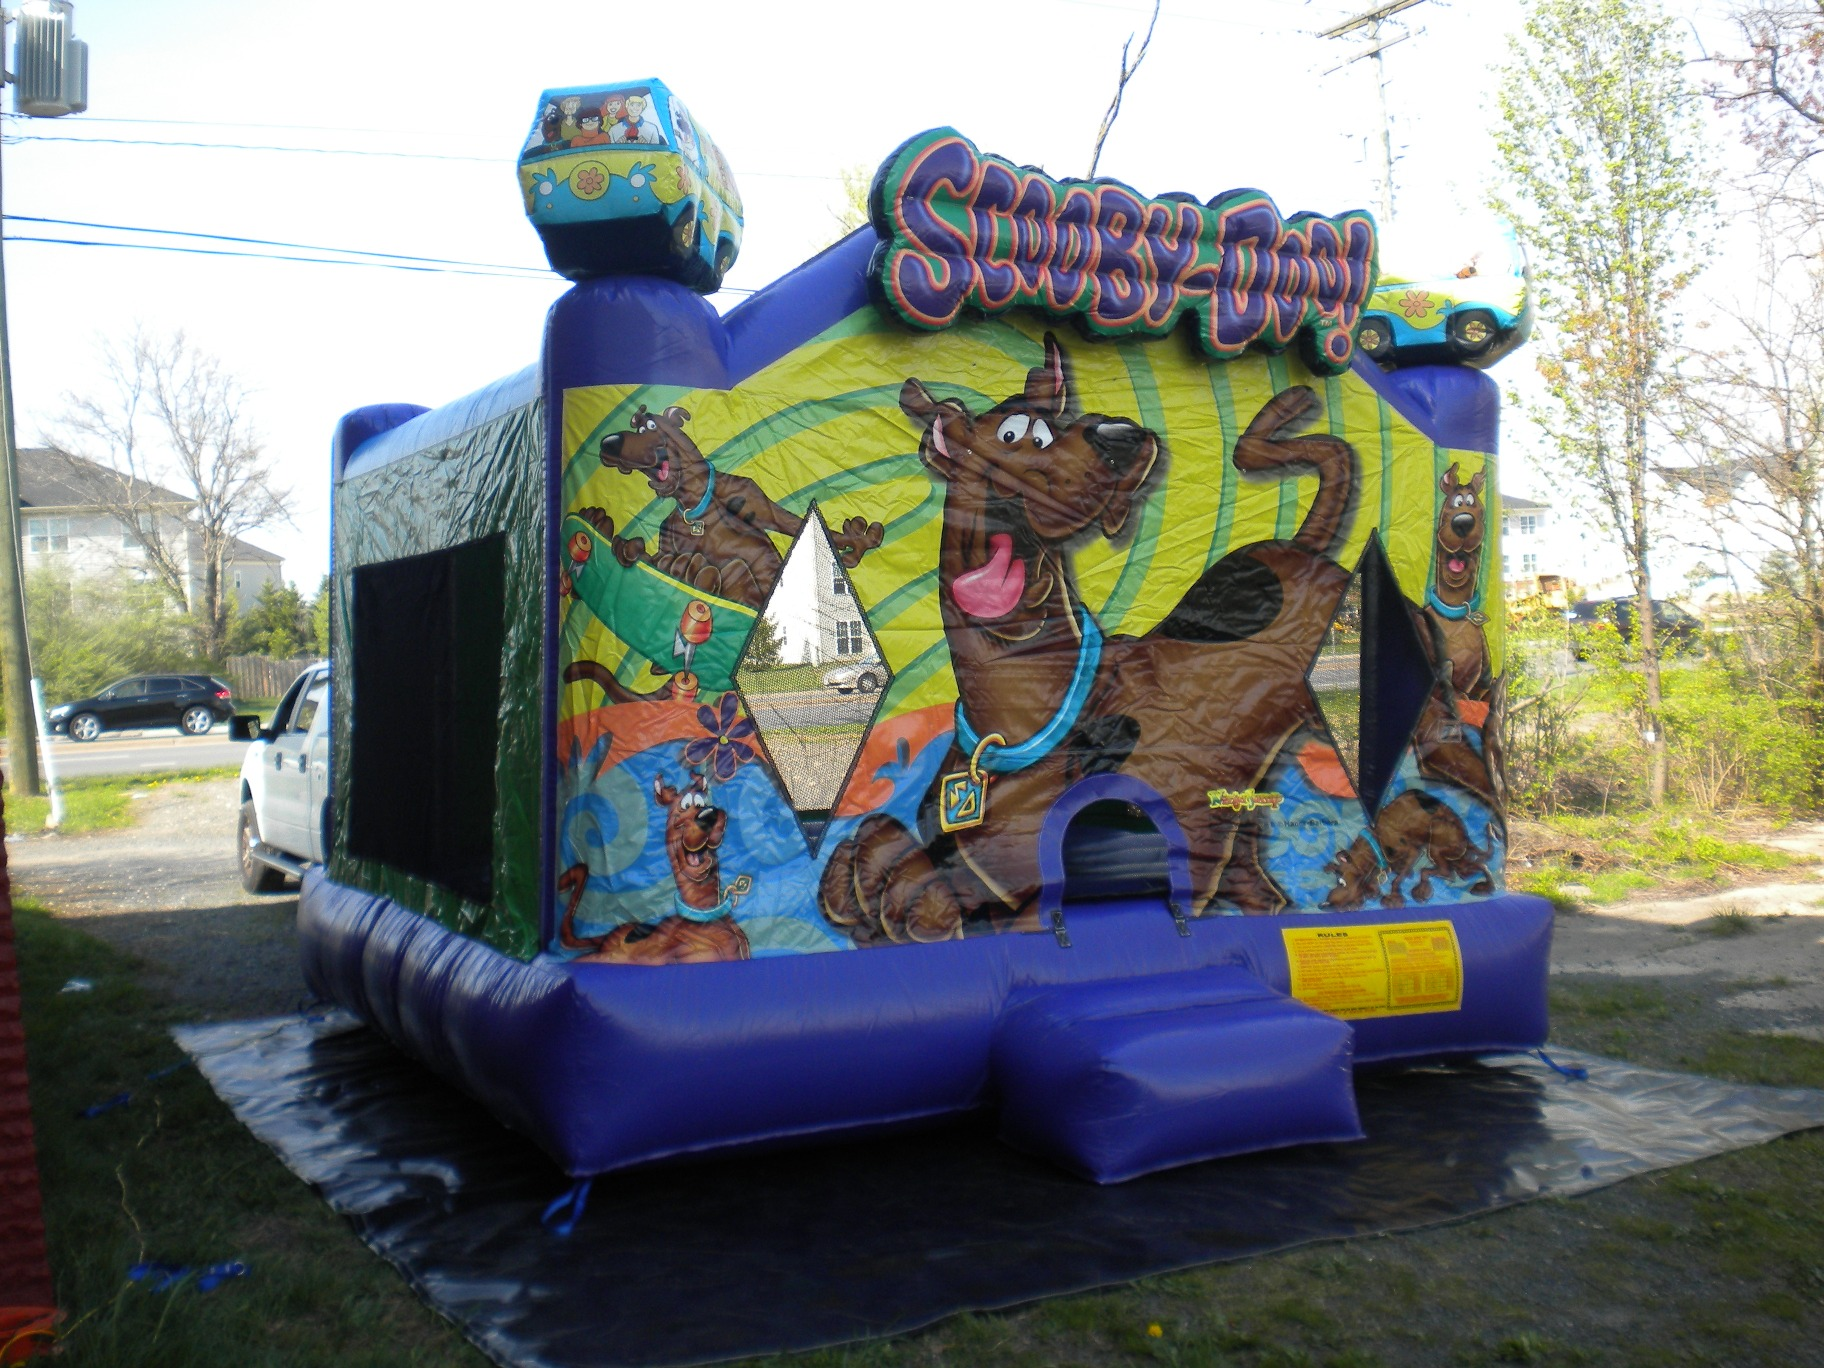 Scooby Doo Jumper Moonbounce Front Left View